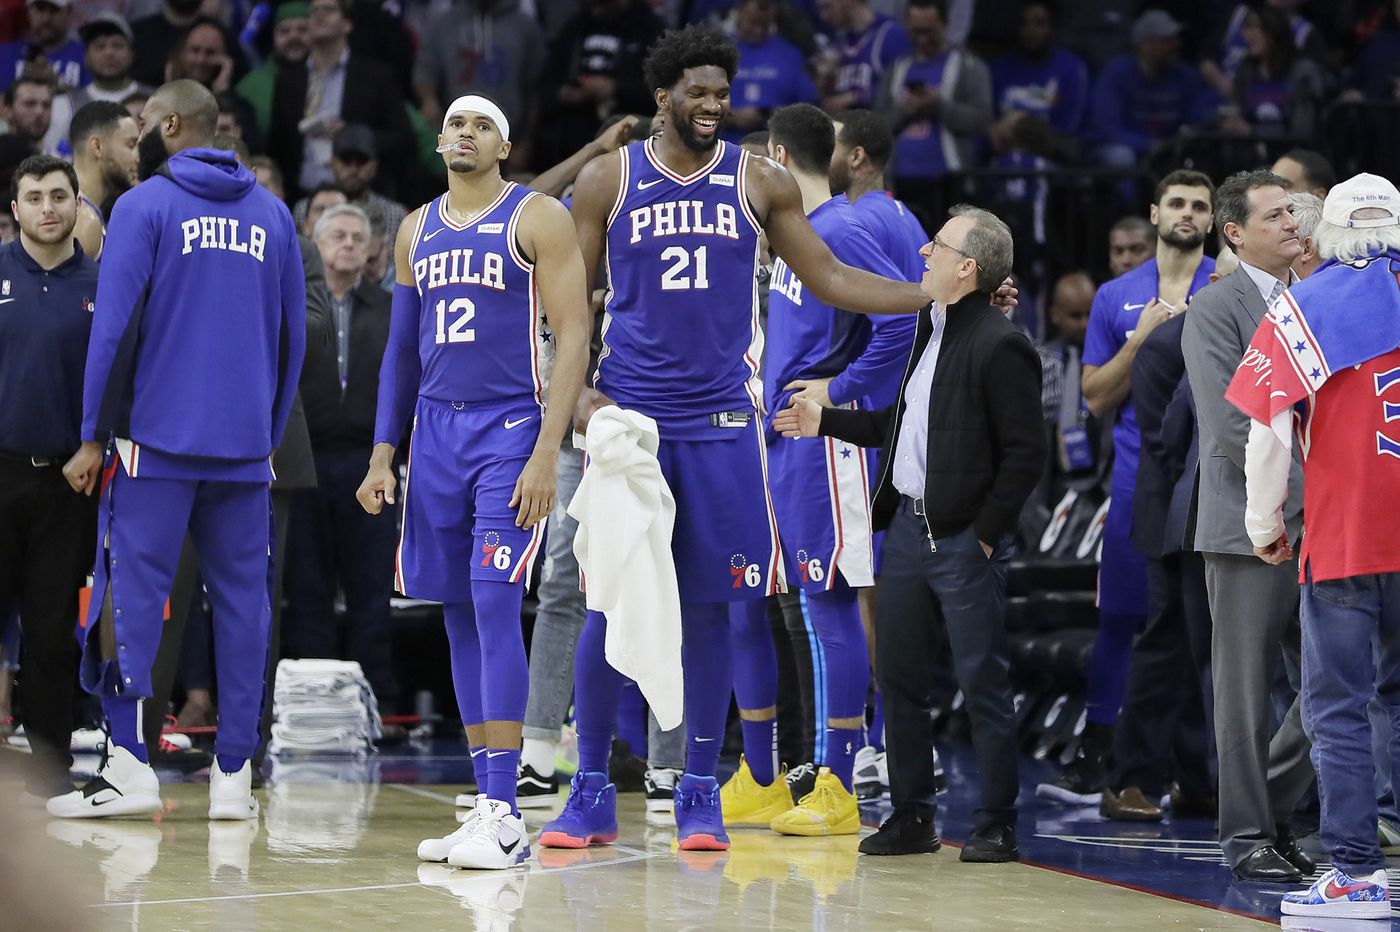 If anyone needs to social distance, it's the Sixers owners and their star players   Marcus Hayes